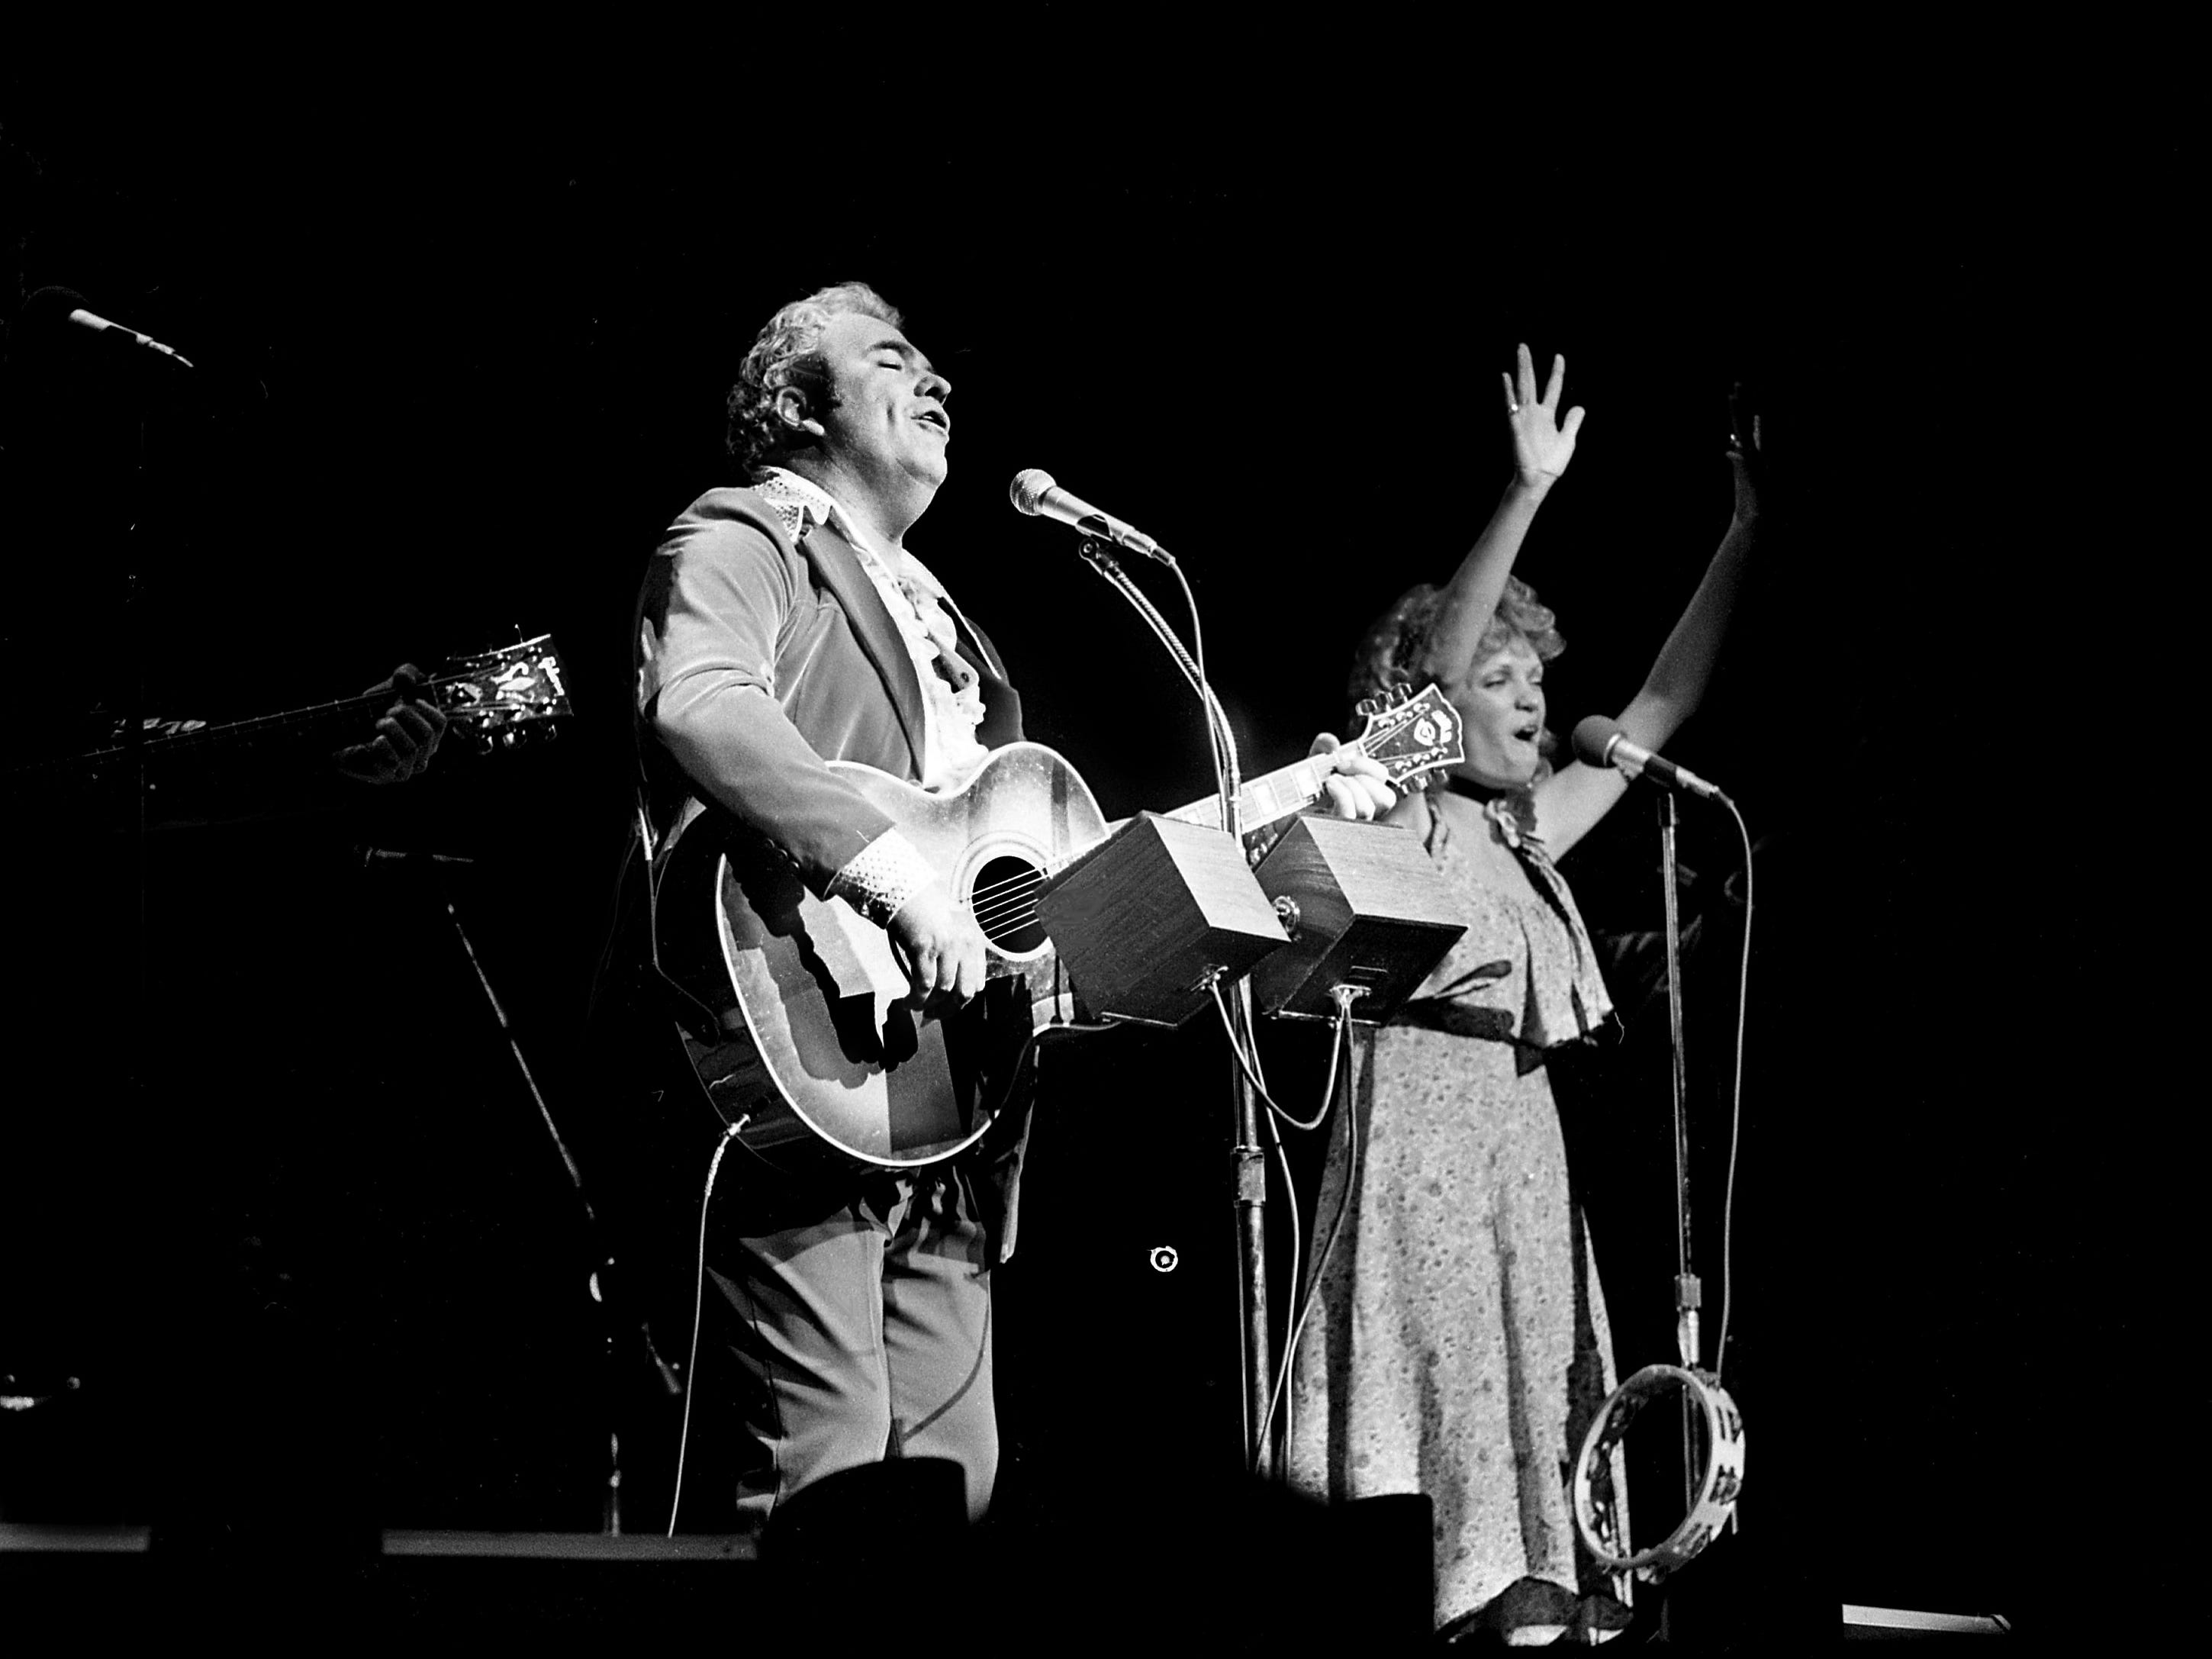 Singer-songwriter Hoyt Axton, left, finishes a song during his Halloween concert at the Grand Ole Opry House on Oct. 31, 1978.